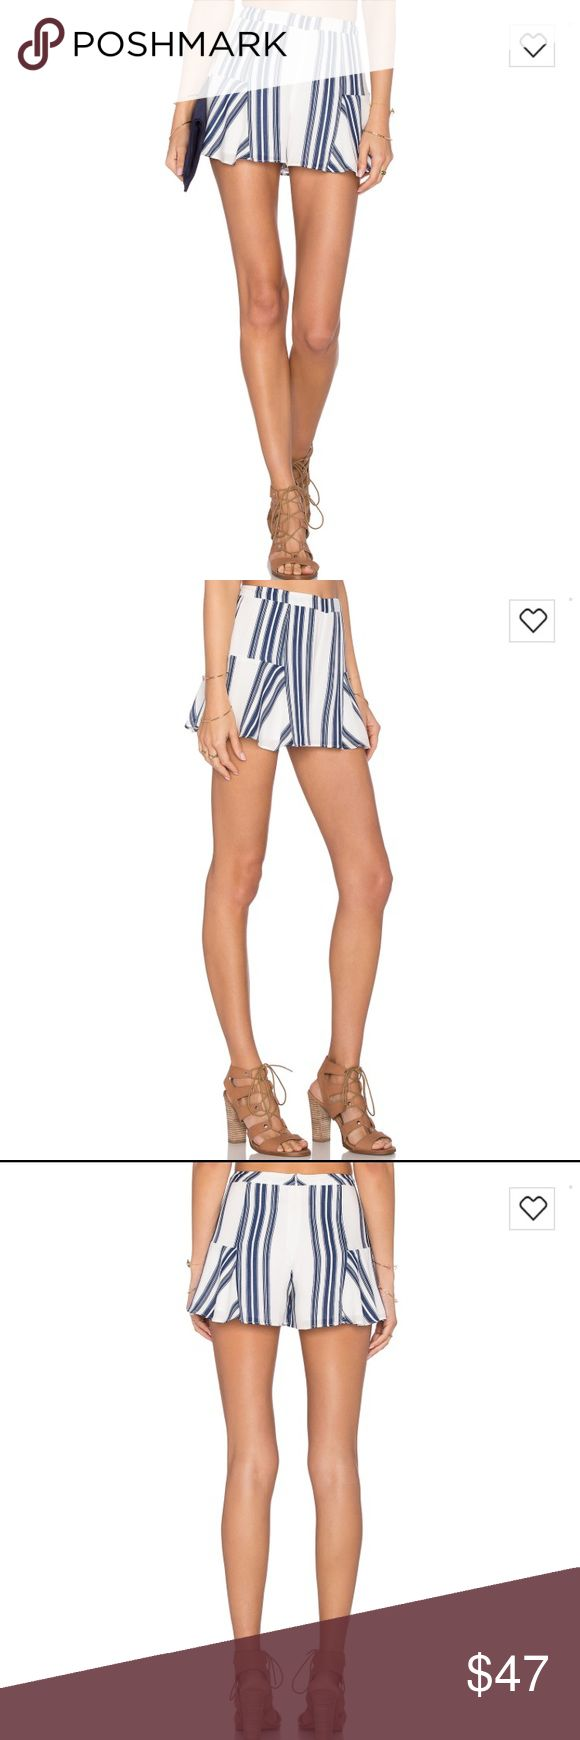 "lovers and friends blue oasis stripe skort lovers and friends blue oasis striped skort. Waist 15"" length 12.5"" ***check out my Instagram @brieharding to see my closet in motion. Everything in my closet has been curated with love and I rock it myself! Lovers + Friends Skirts"